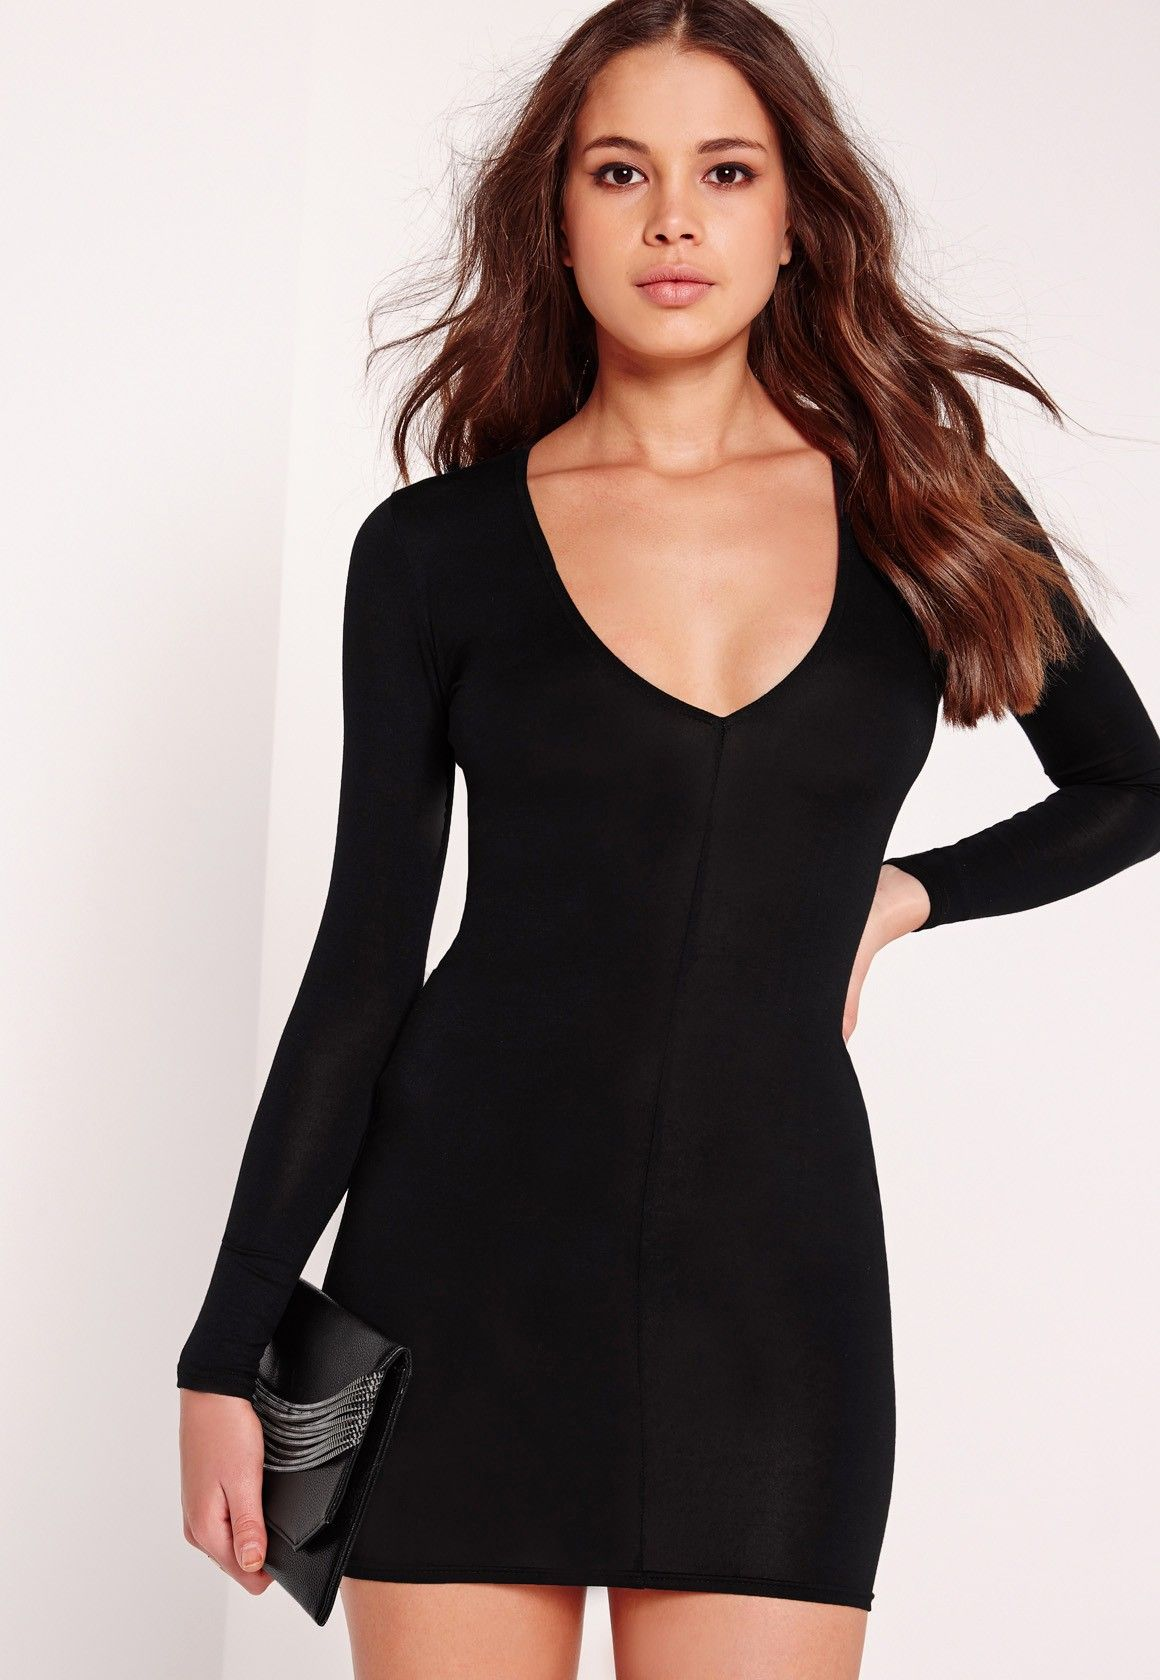 Missguided Plunge Long Sleeve Bodycon Dress Black Black Bodycon Dress Long Sleeve Long Sleeve Cocktail Dress Long Sleeve Plunge Dress